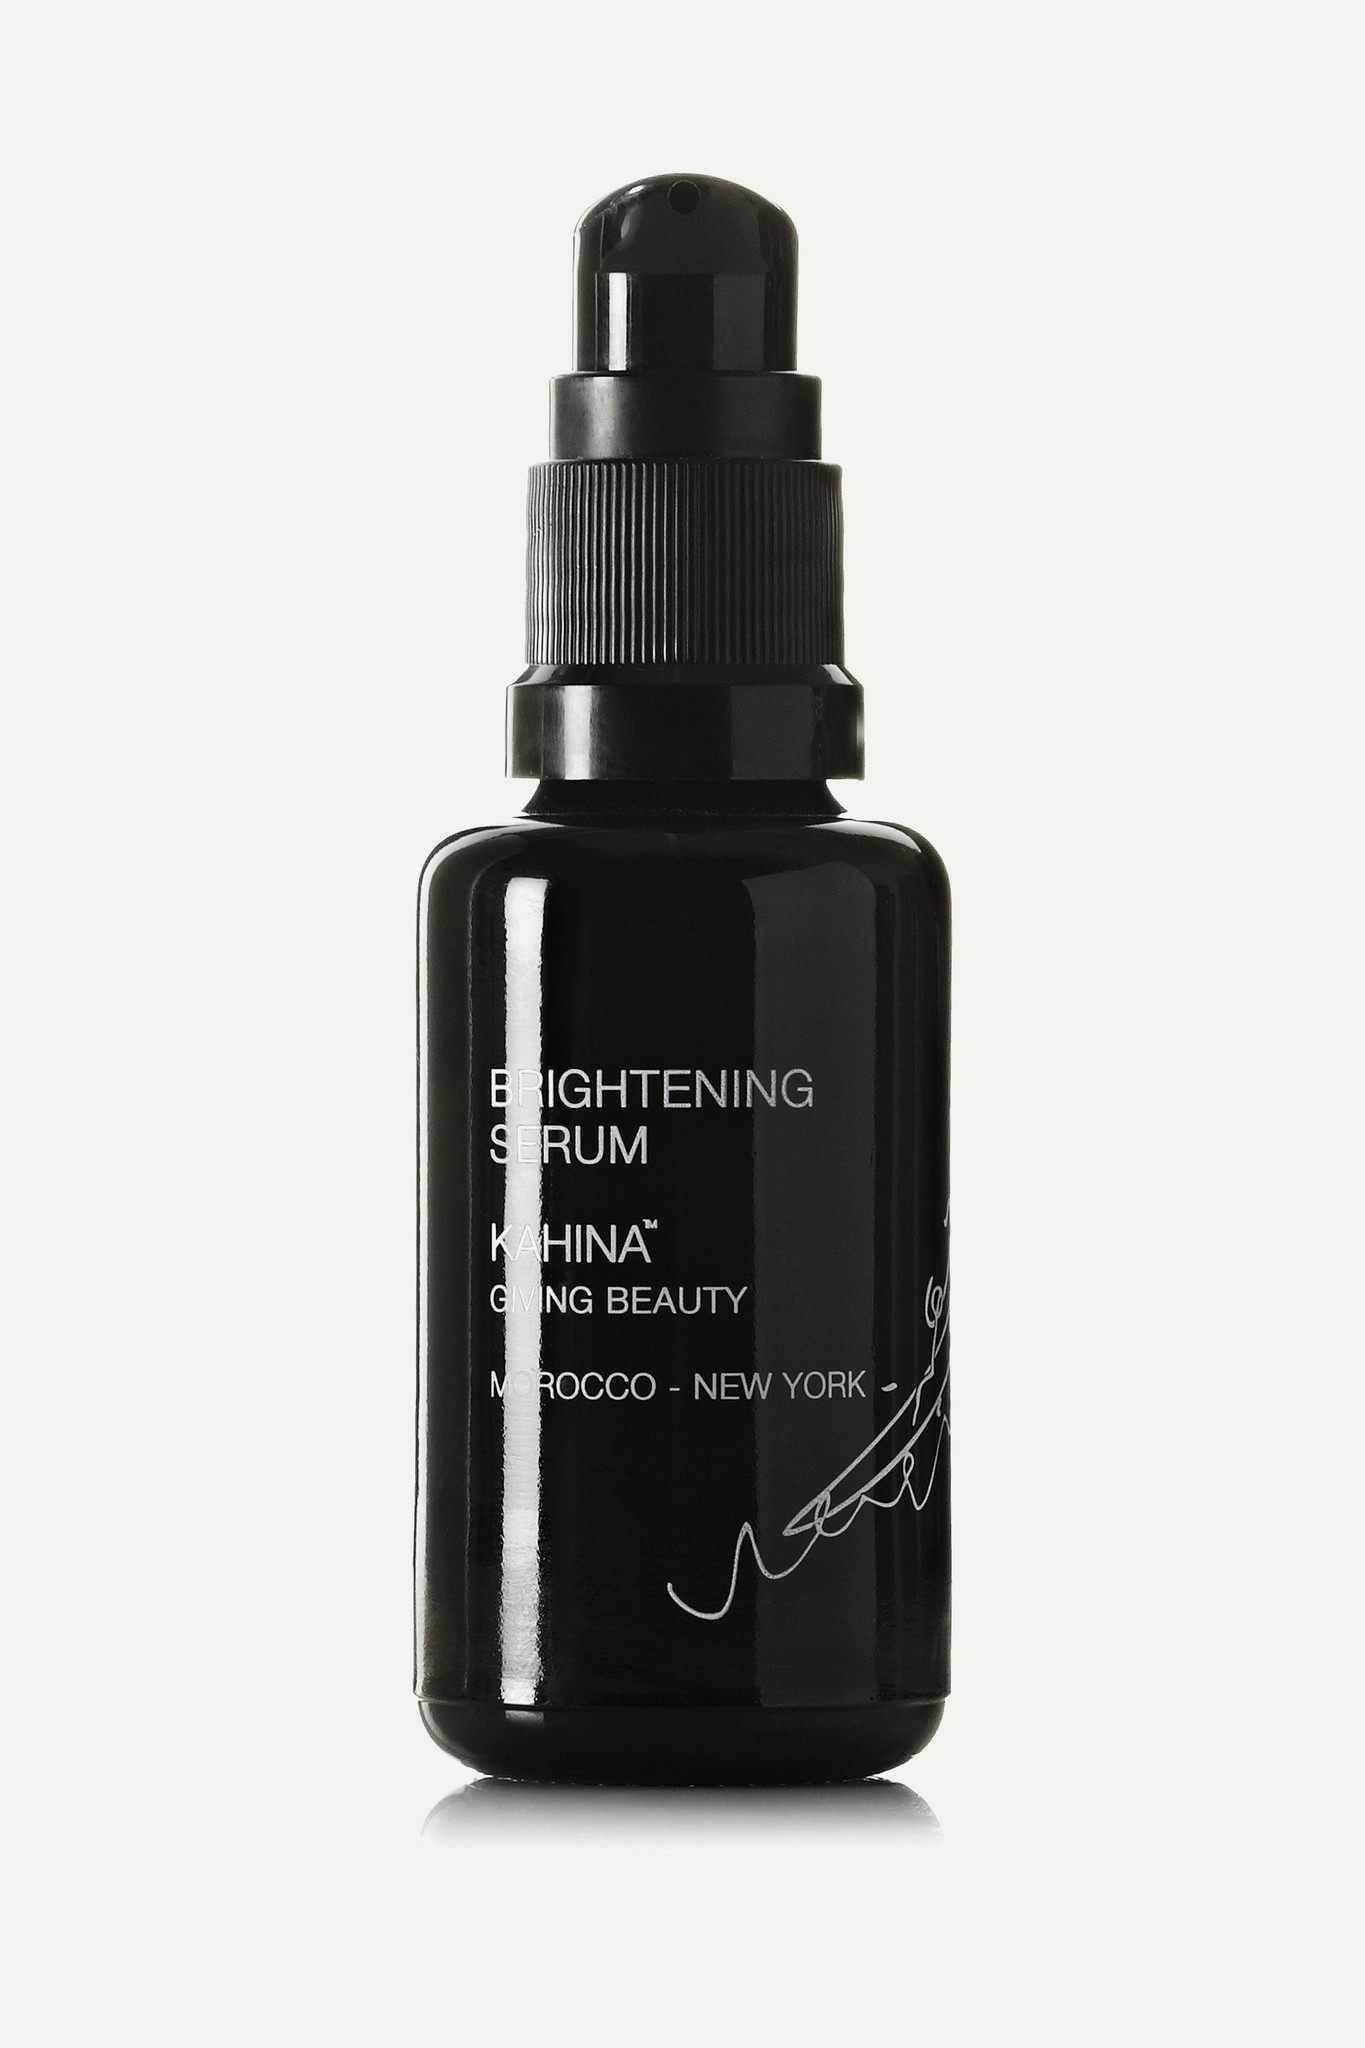 KAHINA GIVING BEAUTY - 【net Sustain】亮白精华液,30ml - 无色 - one size